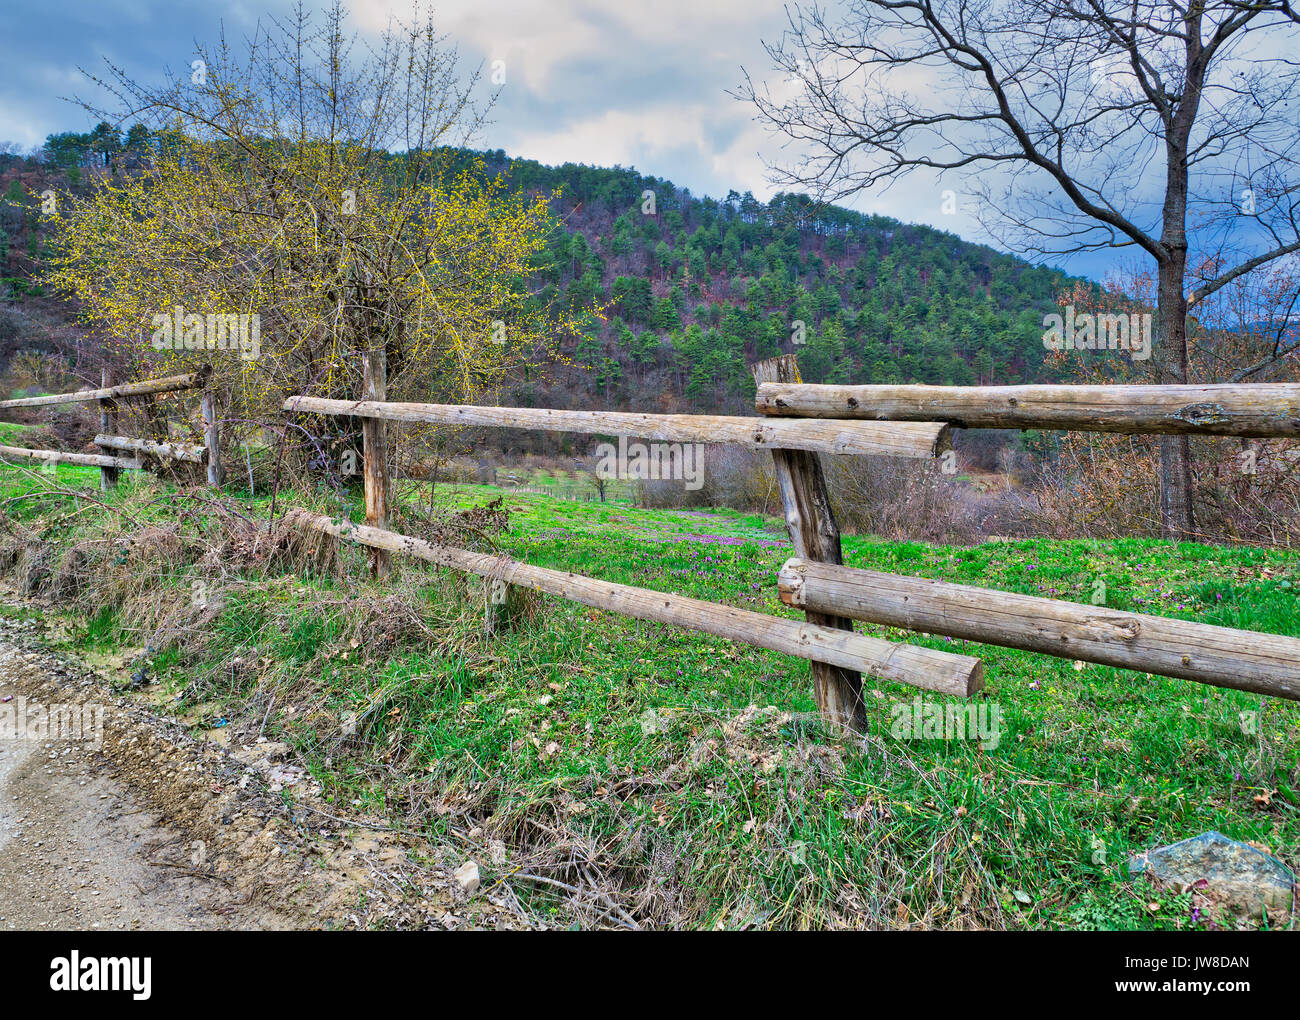 Old wooden fence, trees, green grass, and blue cloudy sky on green meadow, Mudurnu, Turkey - Stock Image